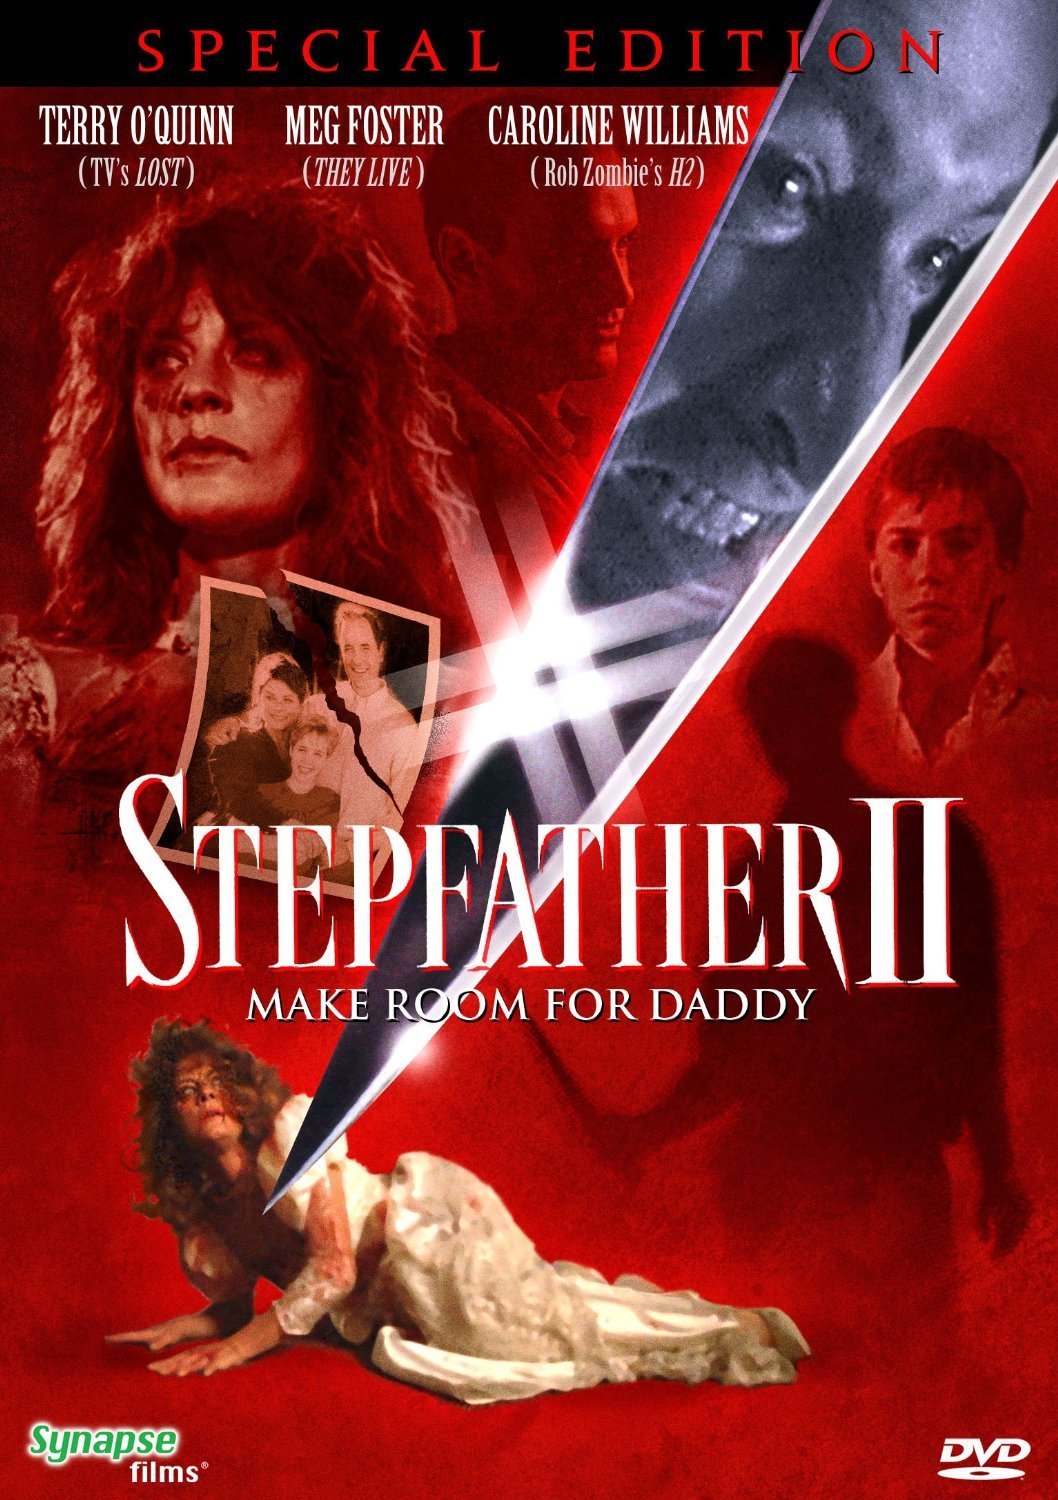 Stepfather 2 Make Room For Daddy DVD